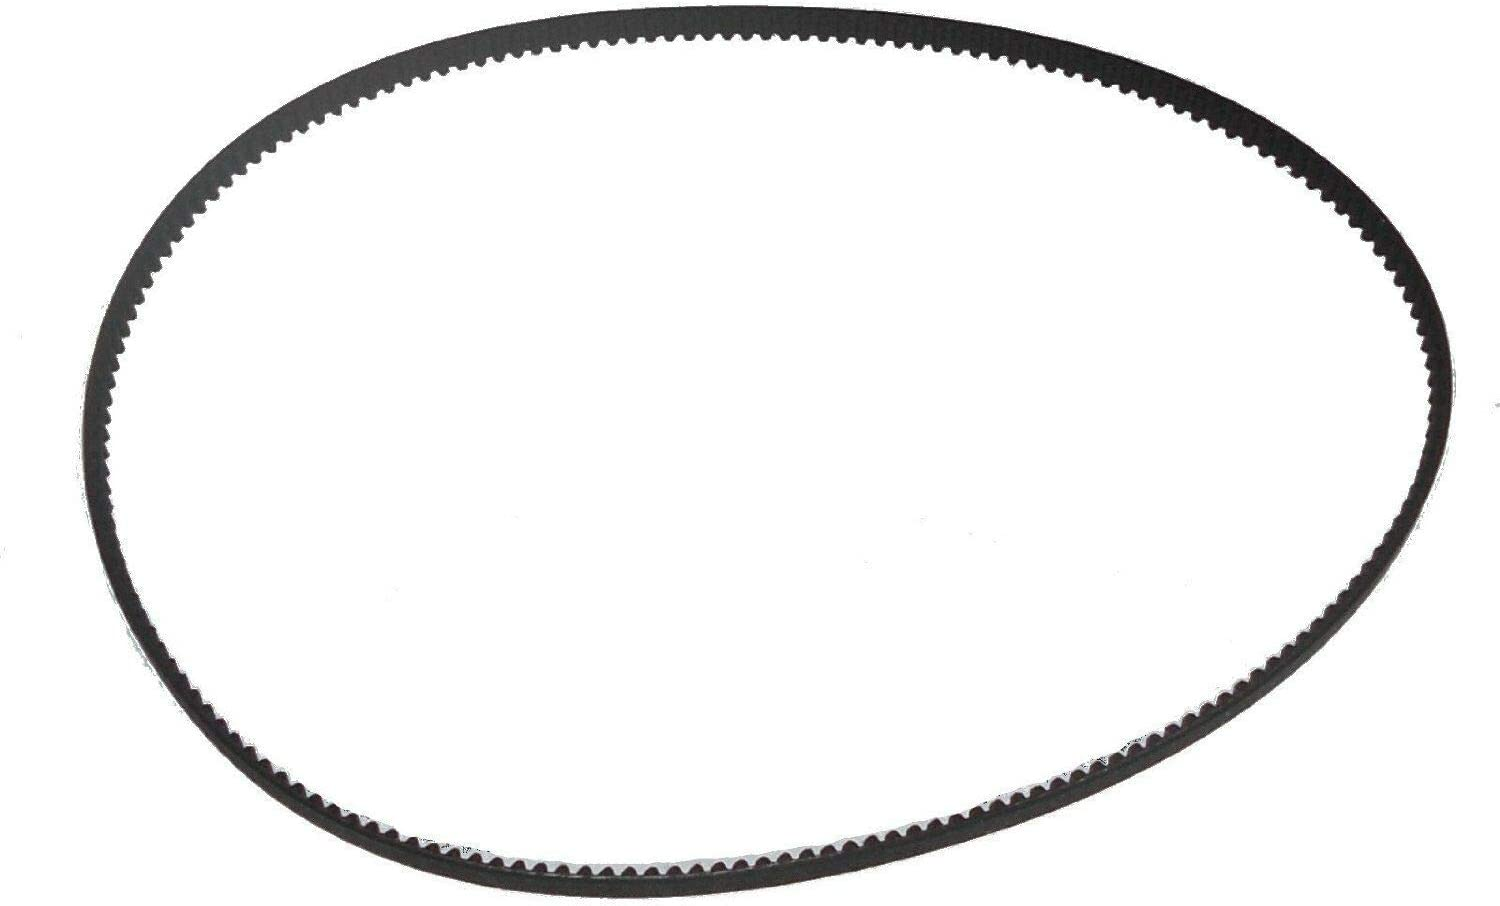 Replacement Parts New Belt for Bread Challenge the lowest price Richards Maker Machi Max 43% OFF Morphy